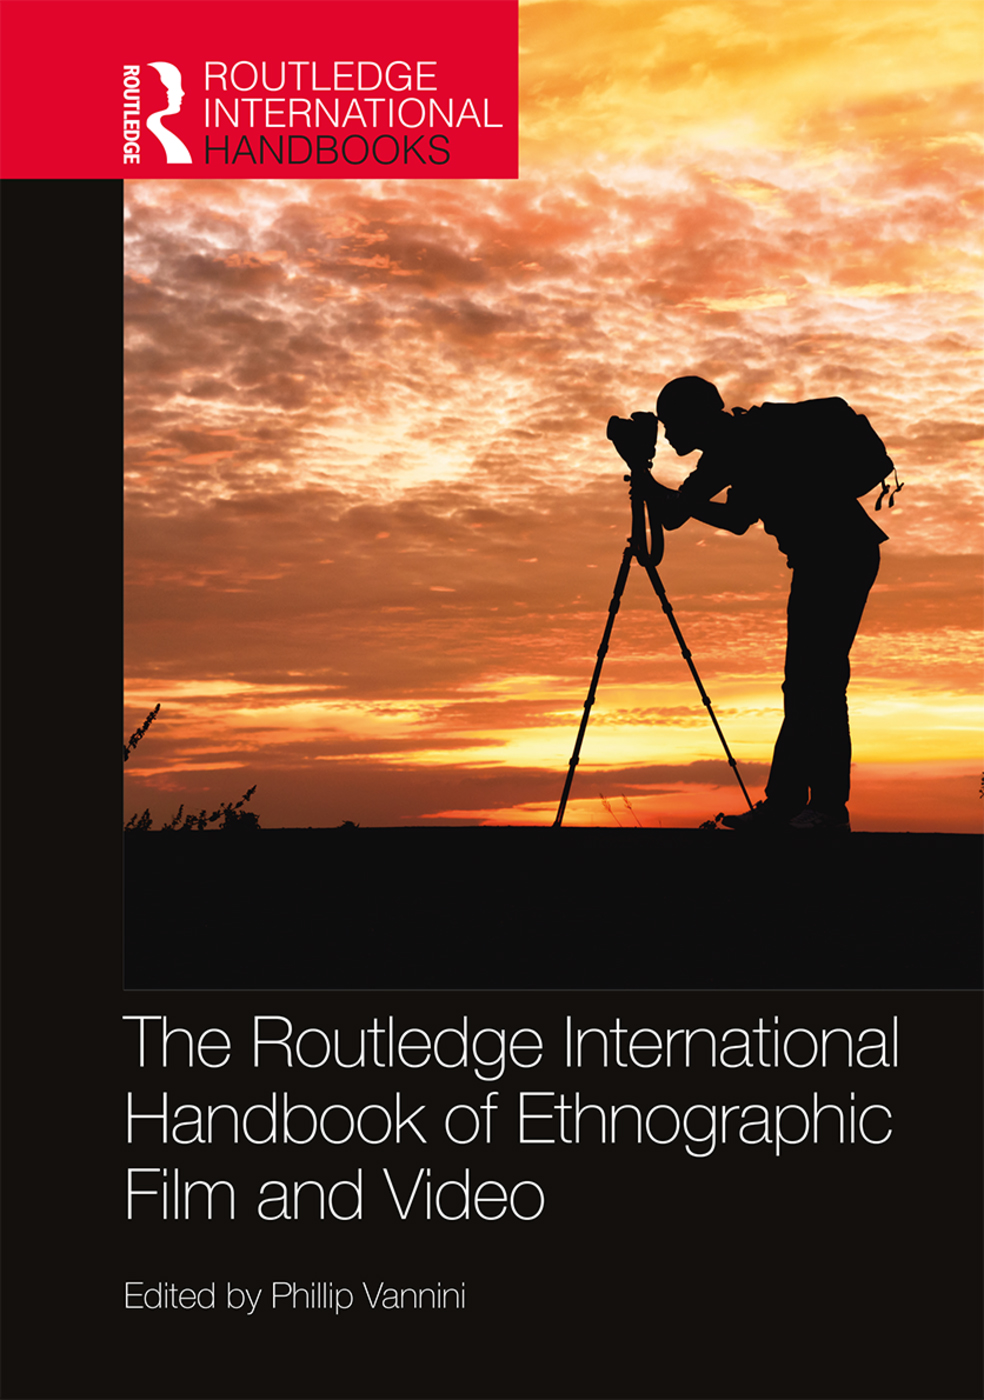 The Routledge International Handbook of Ethnographic Film and Video